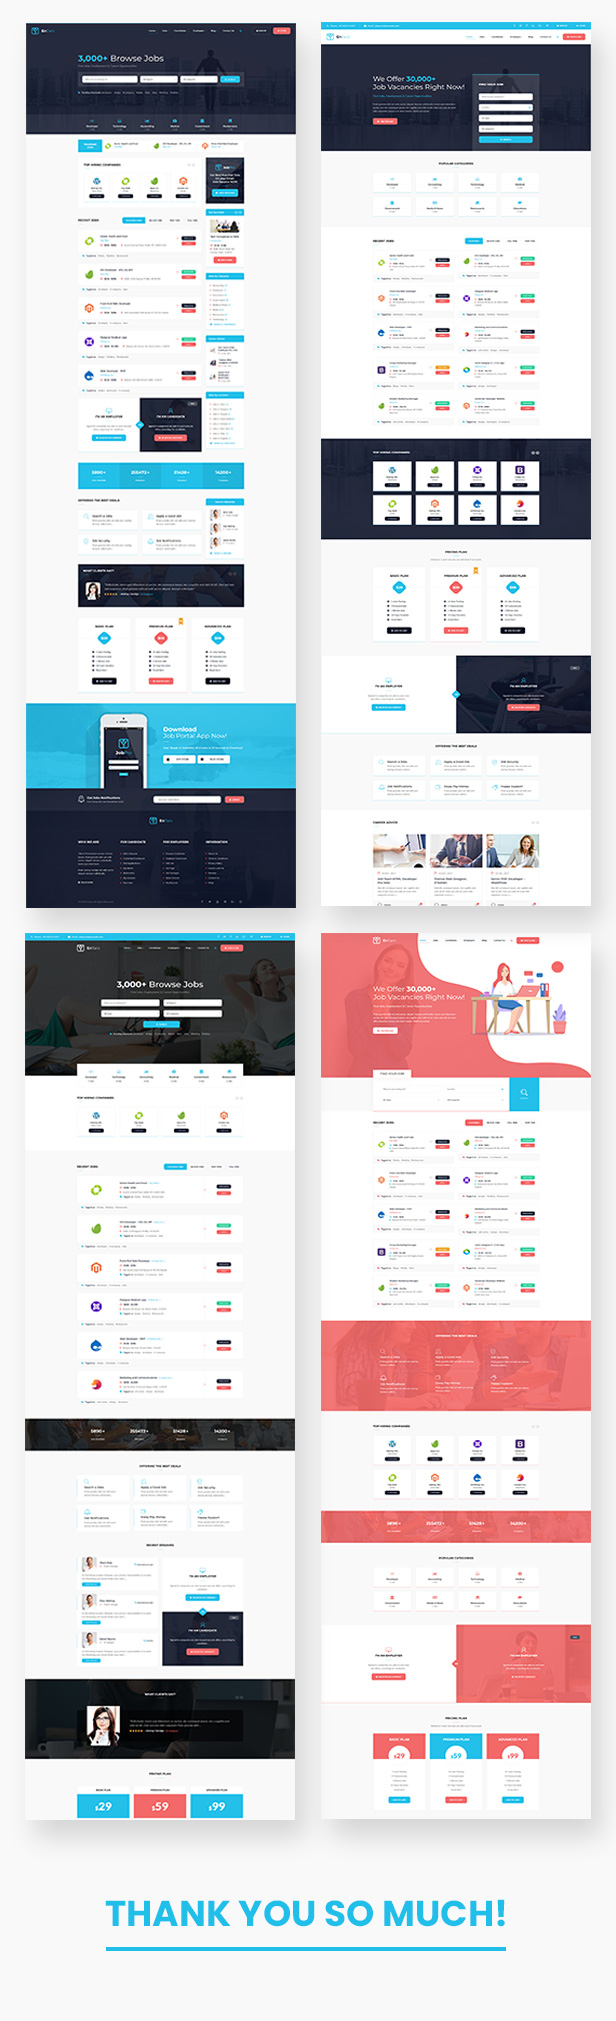 Entaro - Job Portal WordPress Theme - 1